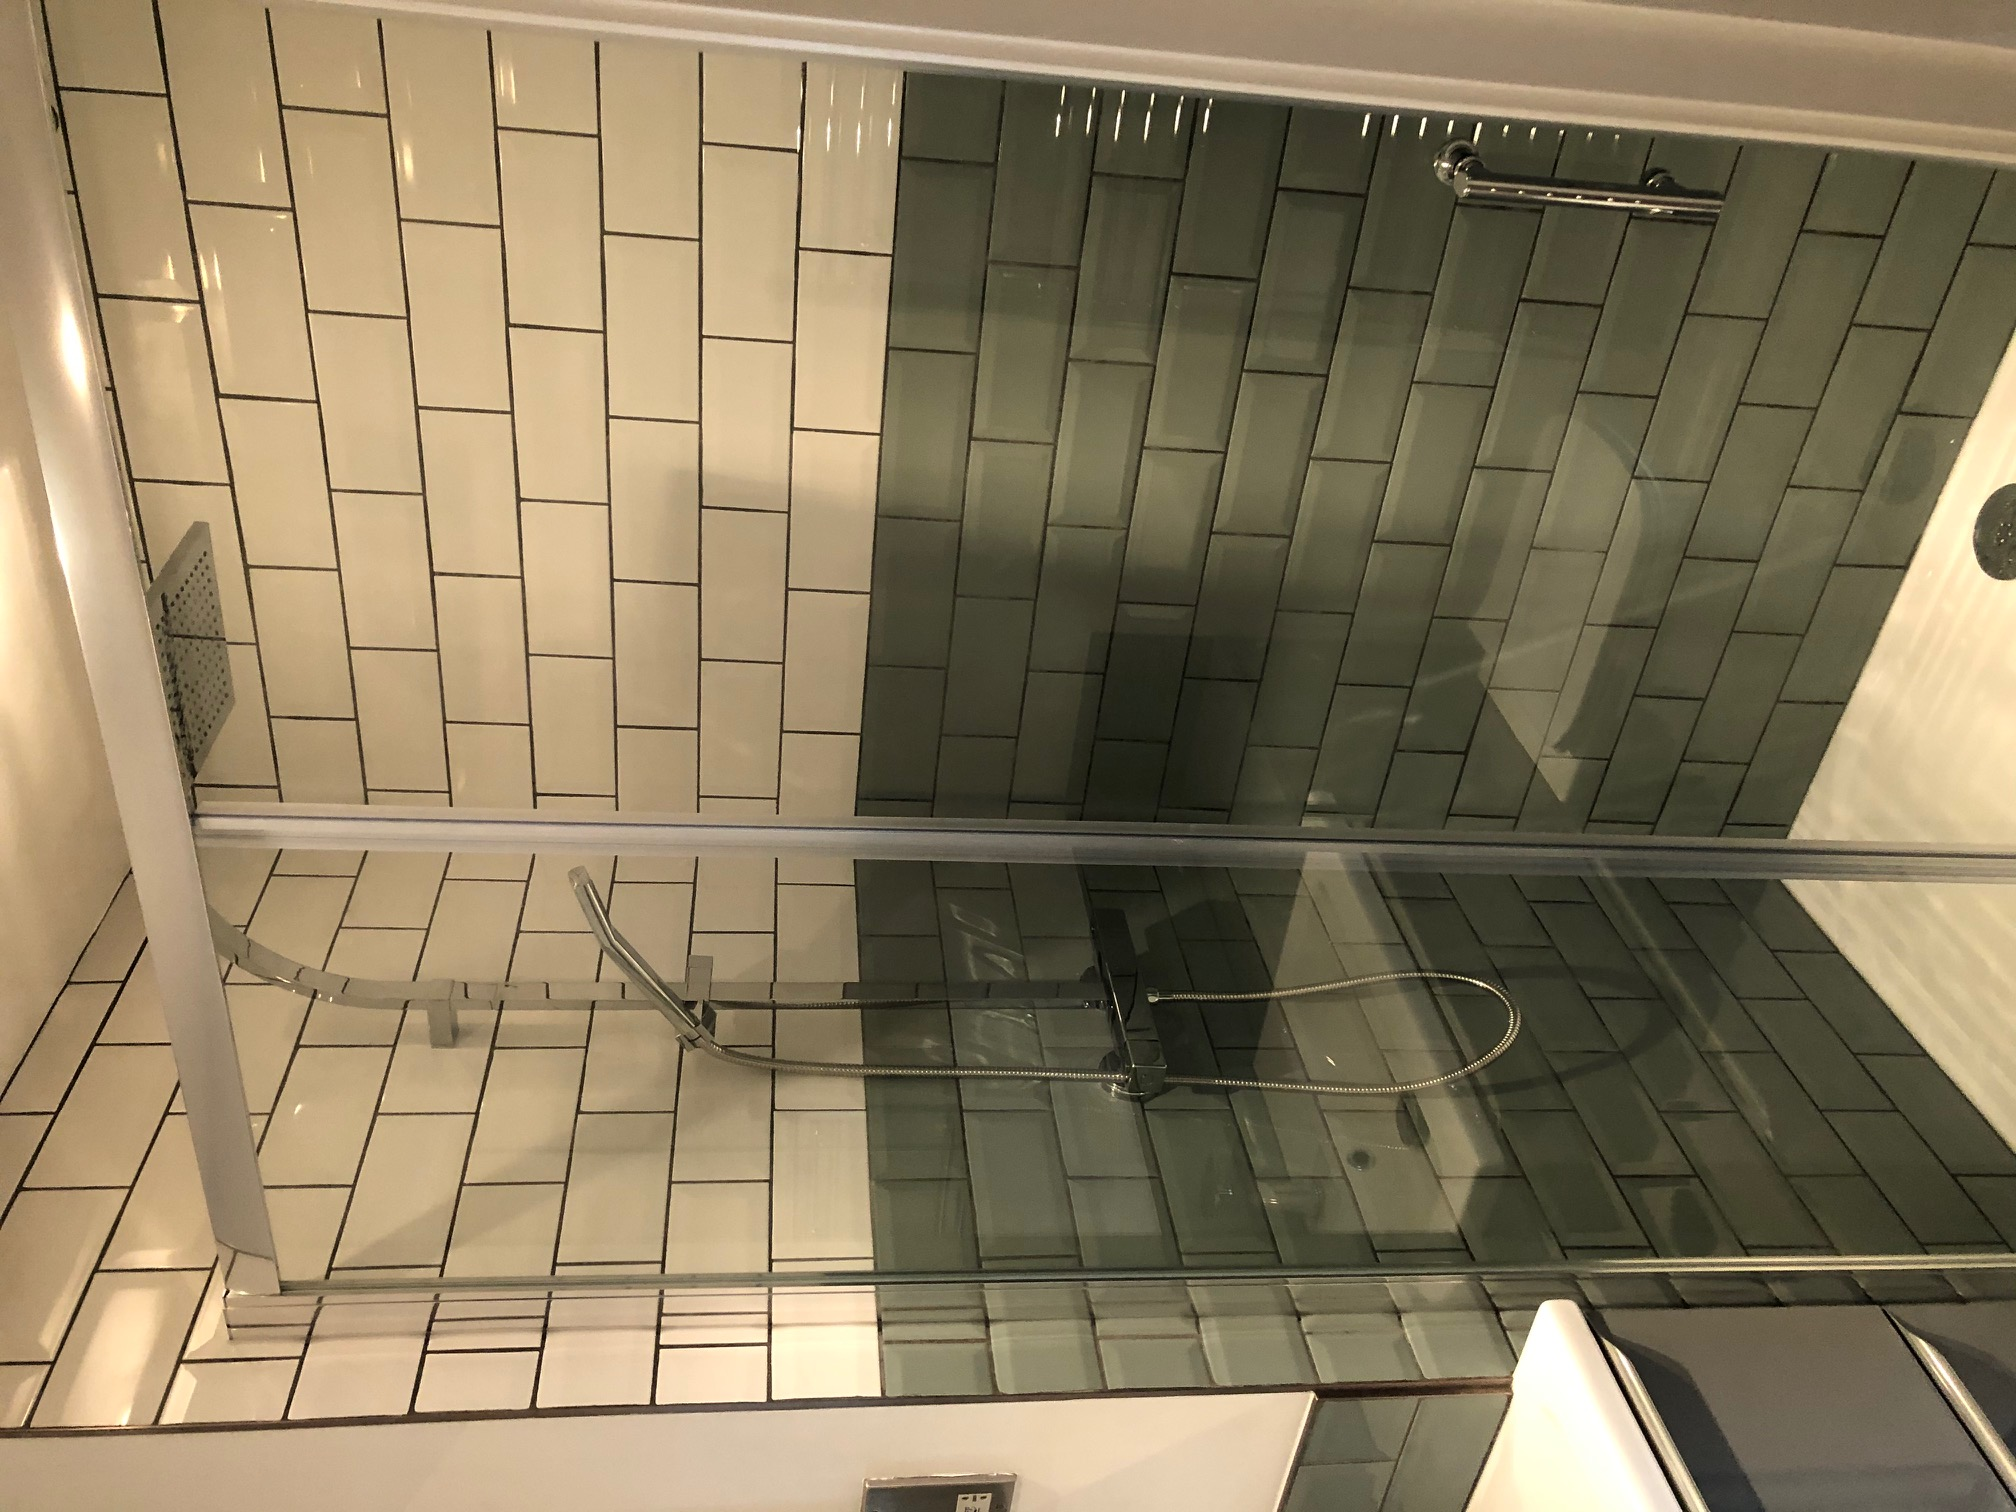 Tiled bathroom enclosure